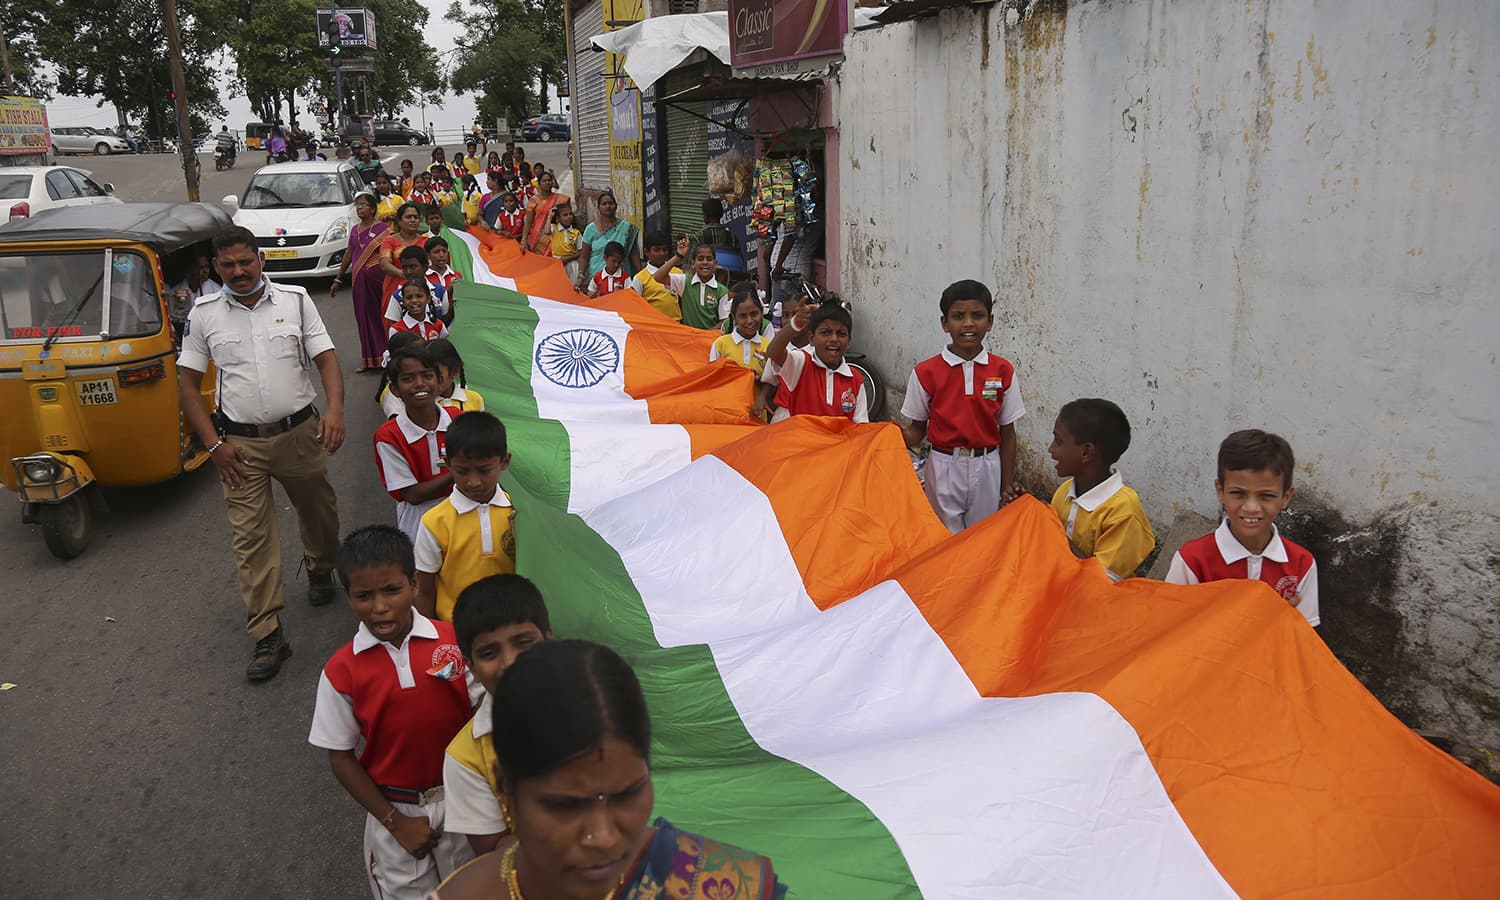 Indian school children carry a long national flag through a street during Independence Day celebrations in Hyderabad, India, Monday, Aug. 15, 2016. ─ AP